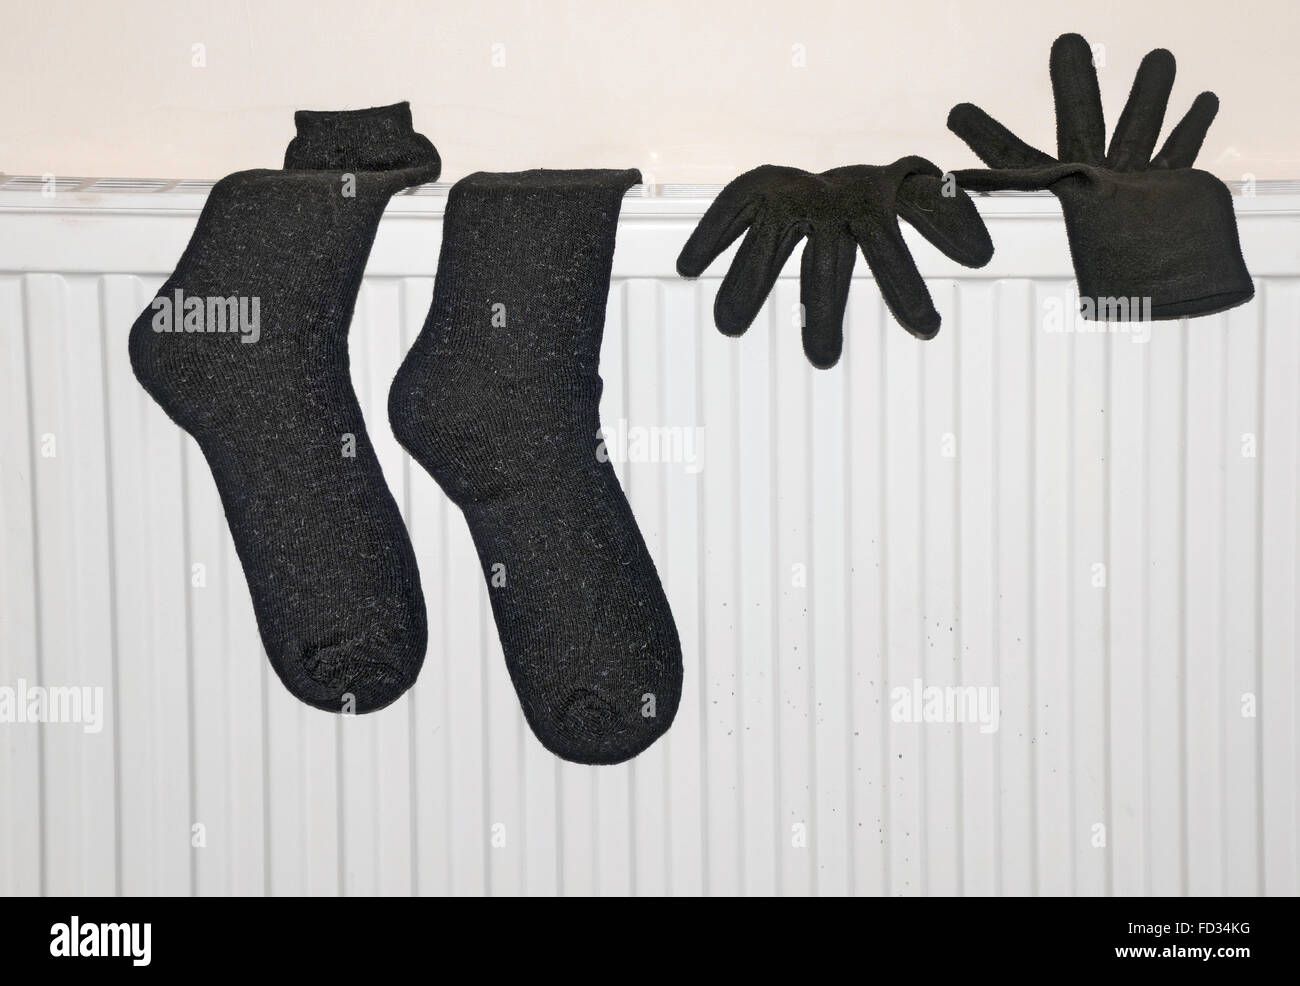 a black pair of wet  gloves and socks dry on a radiator in a room. - Stock Image